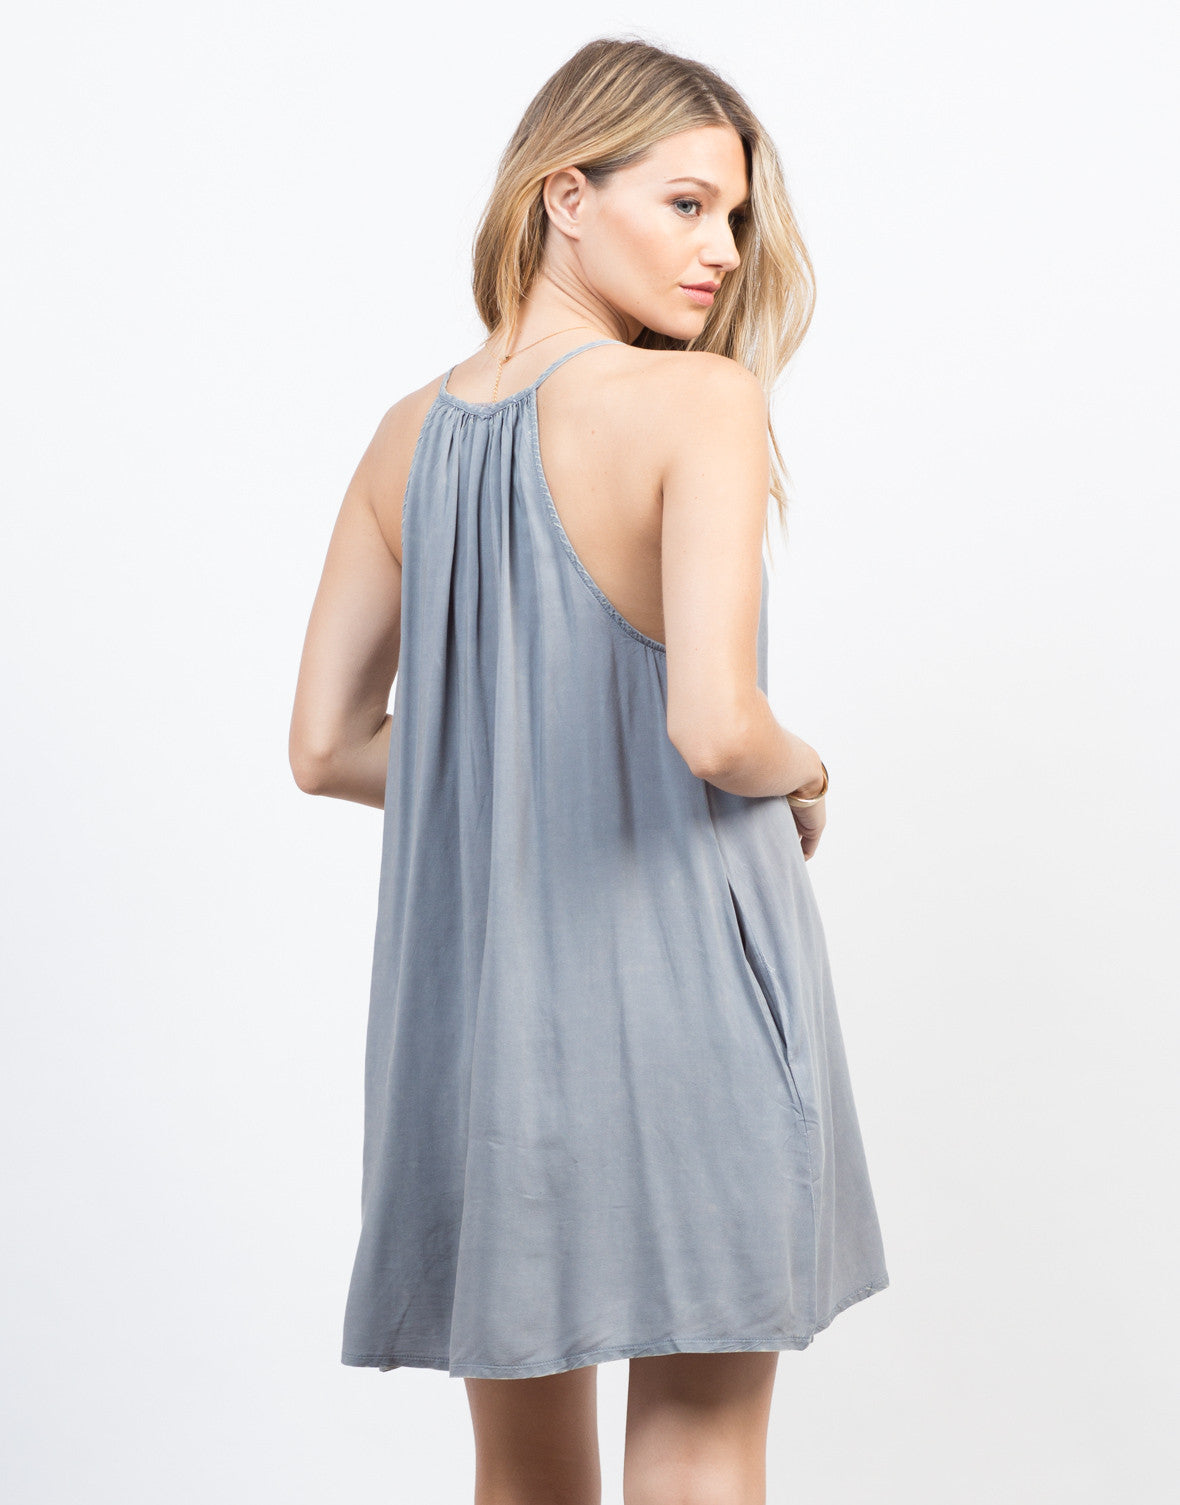 Back View of Flowy Midnight Dress